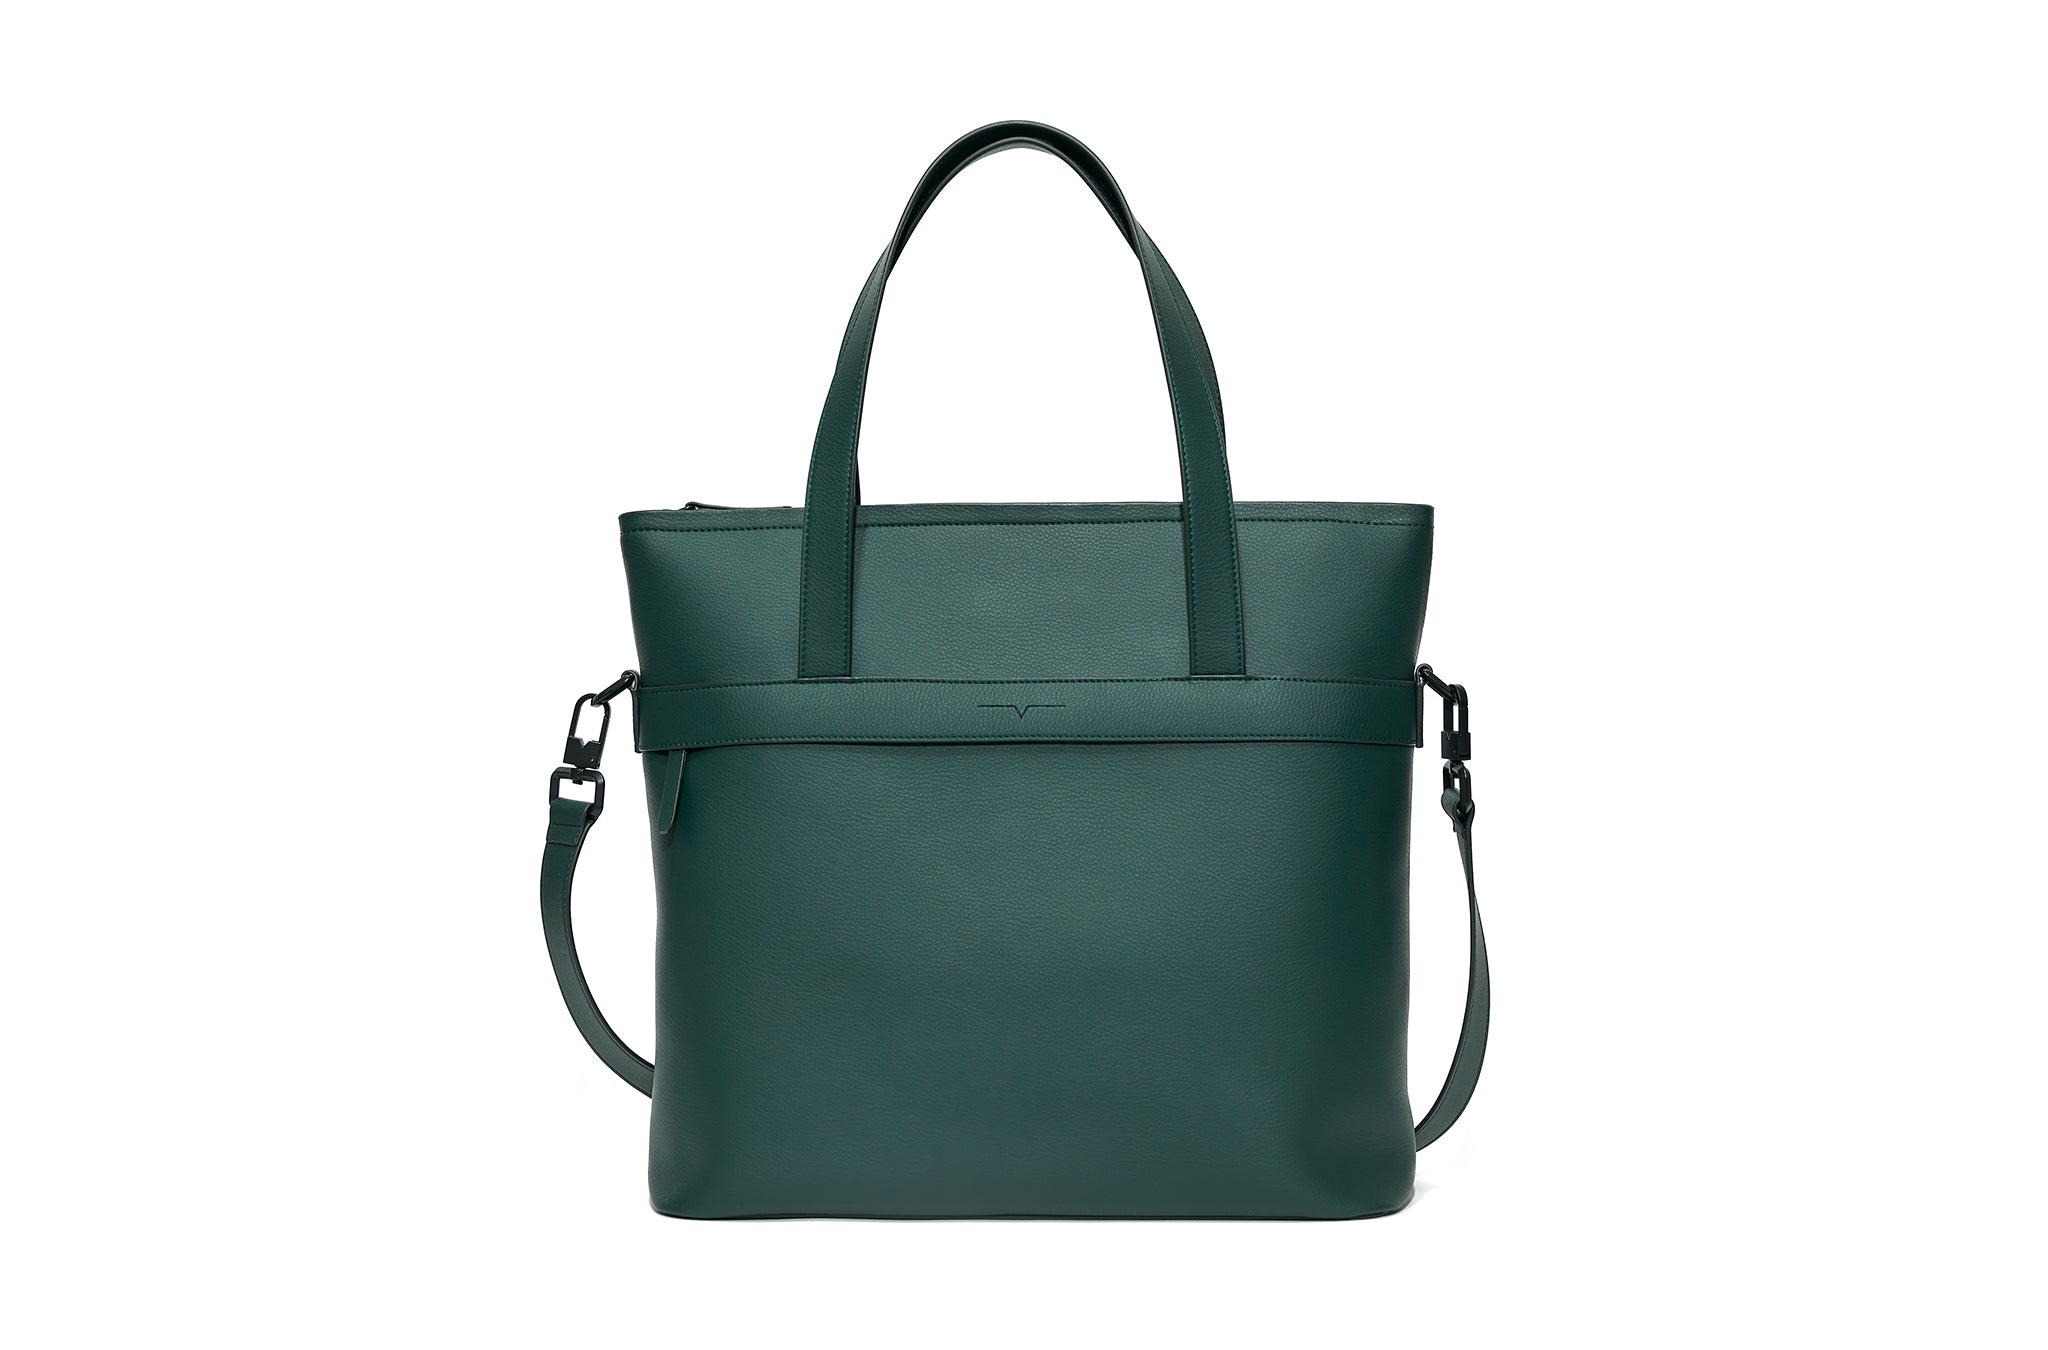 Image of The Zipper Tote